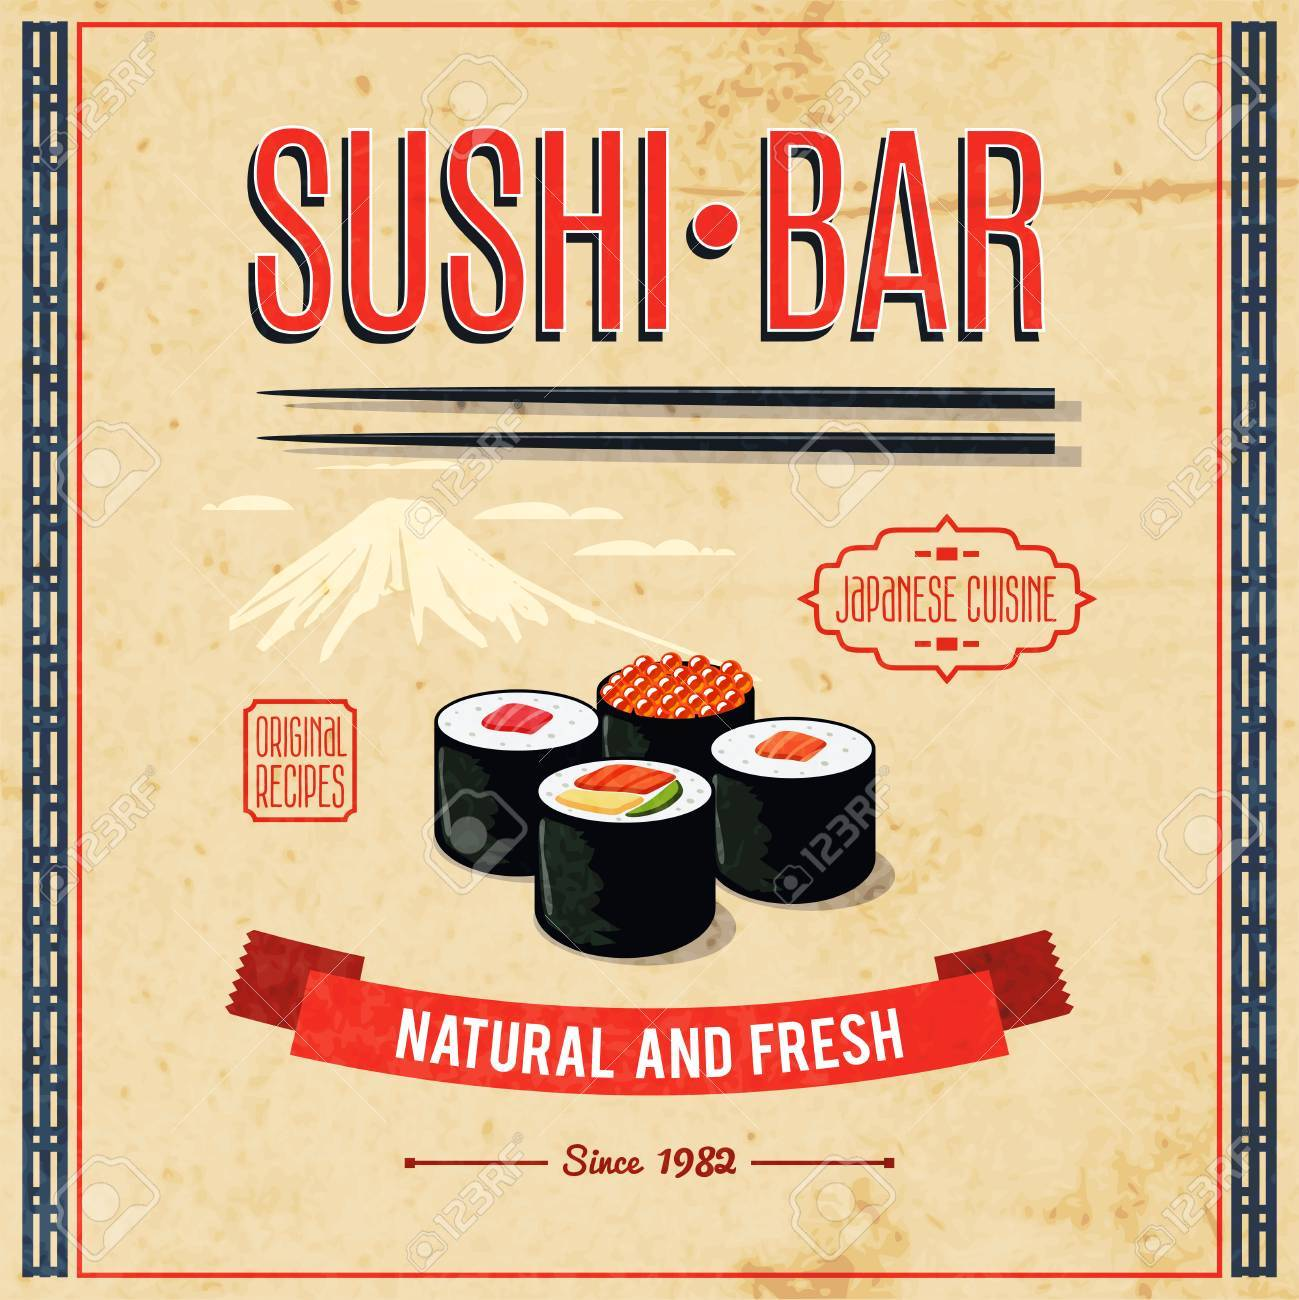 Poster Cuisine Asian Food Sushi Bar Natural And Fresh Japanese Cuisine Poster